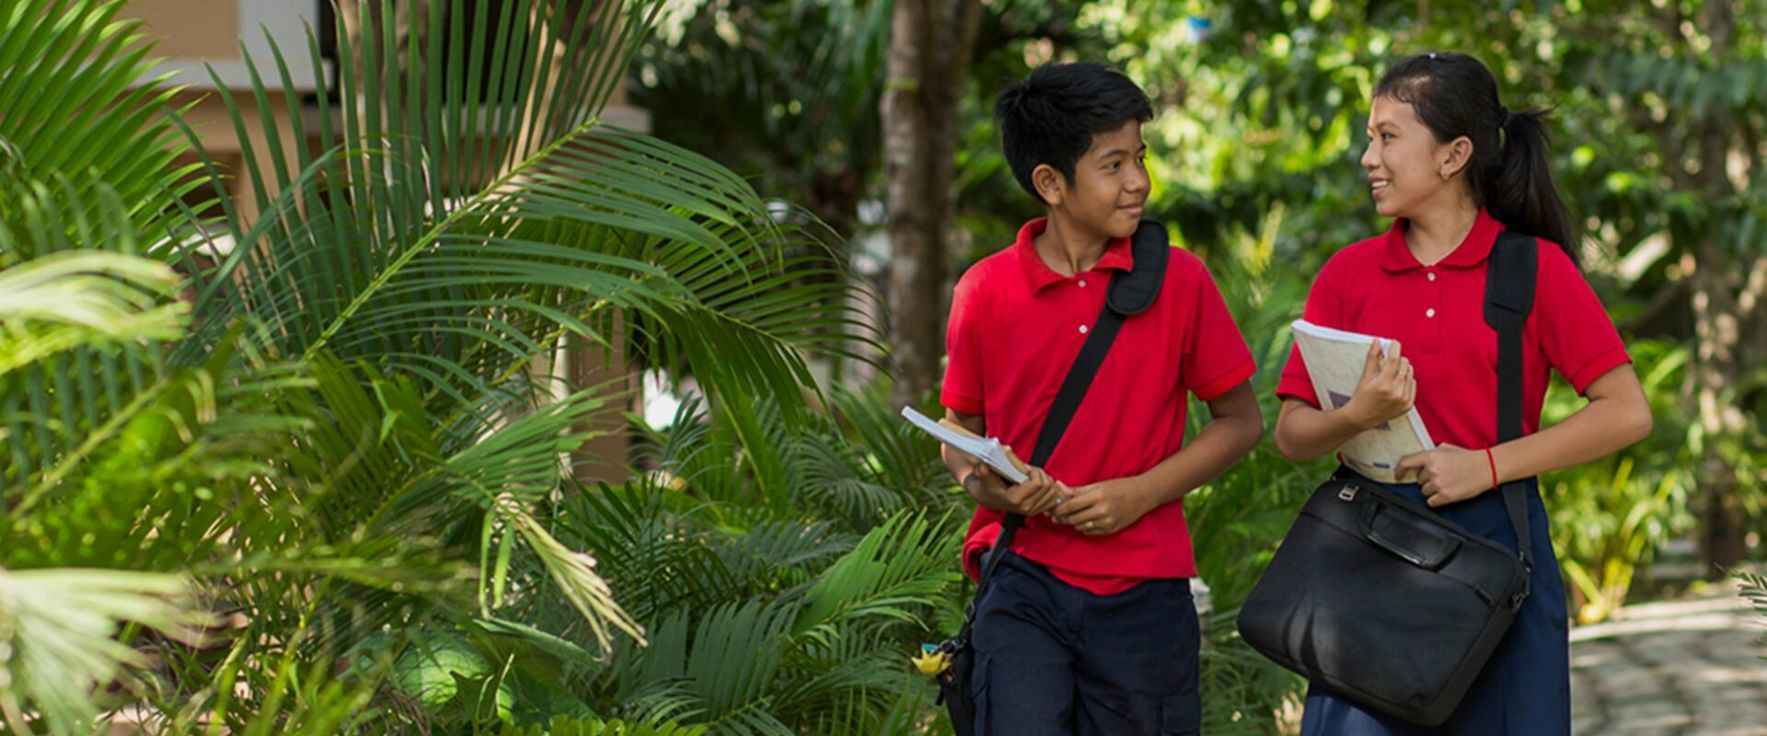 Every donation supports a future Liger leader of Cambodia. image